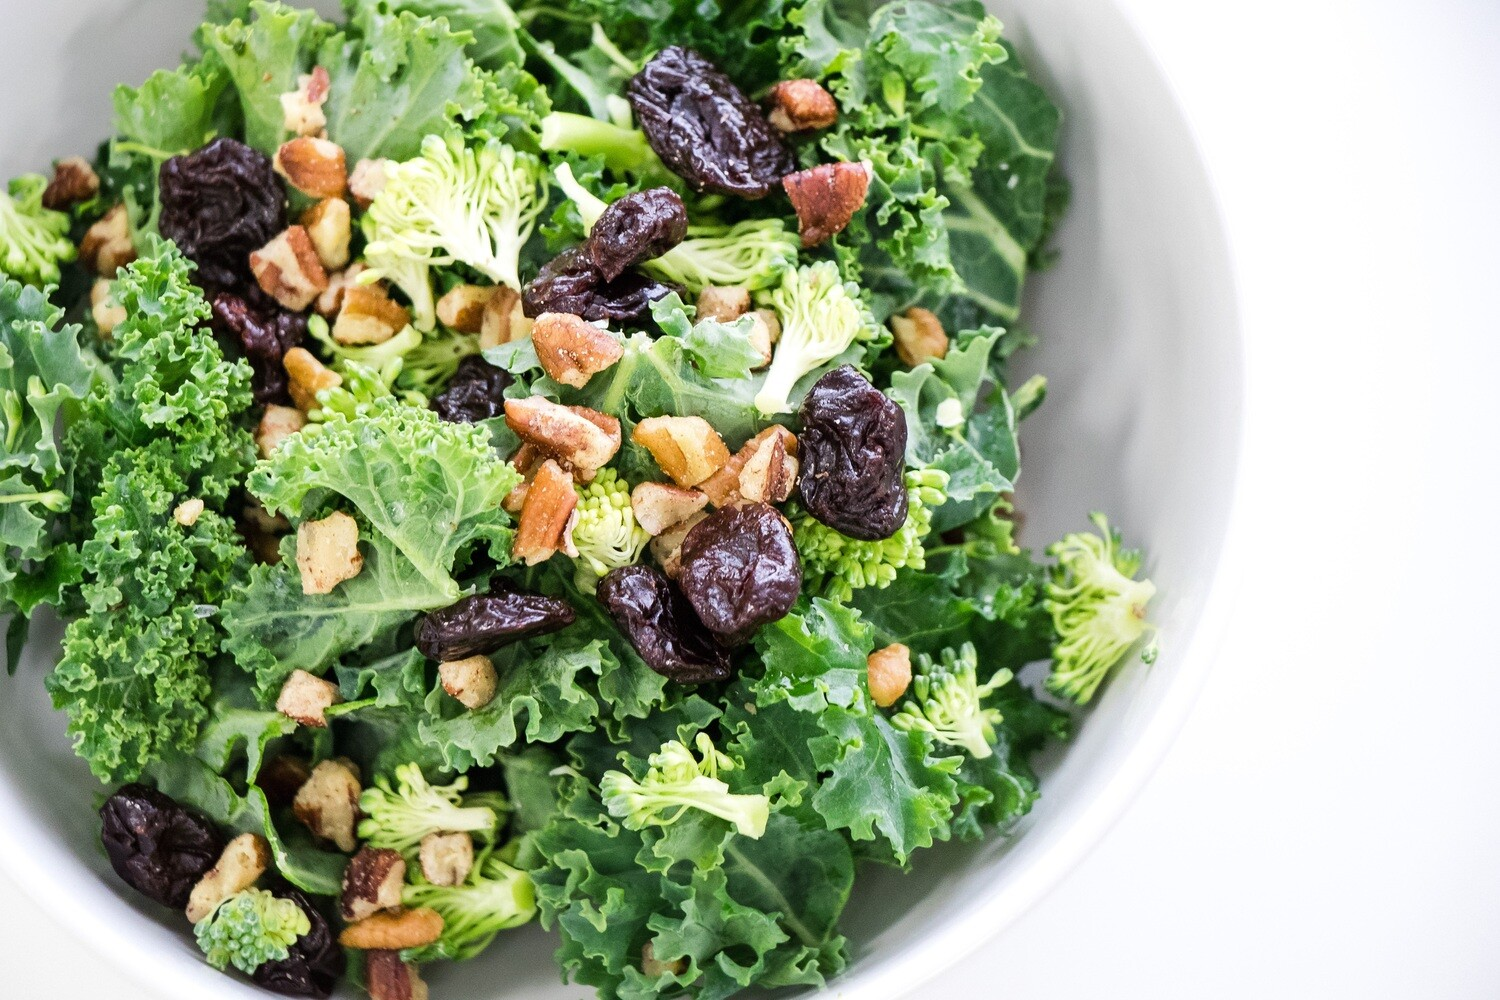 Kale & Broccoli Salad